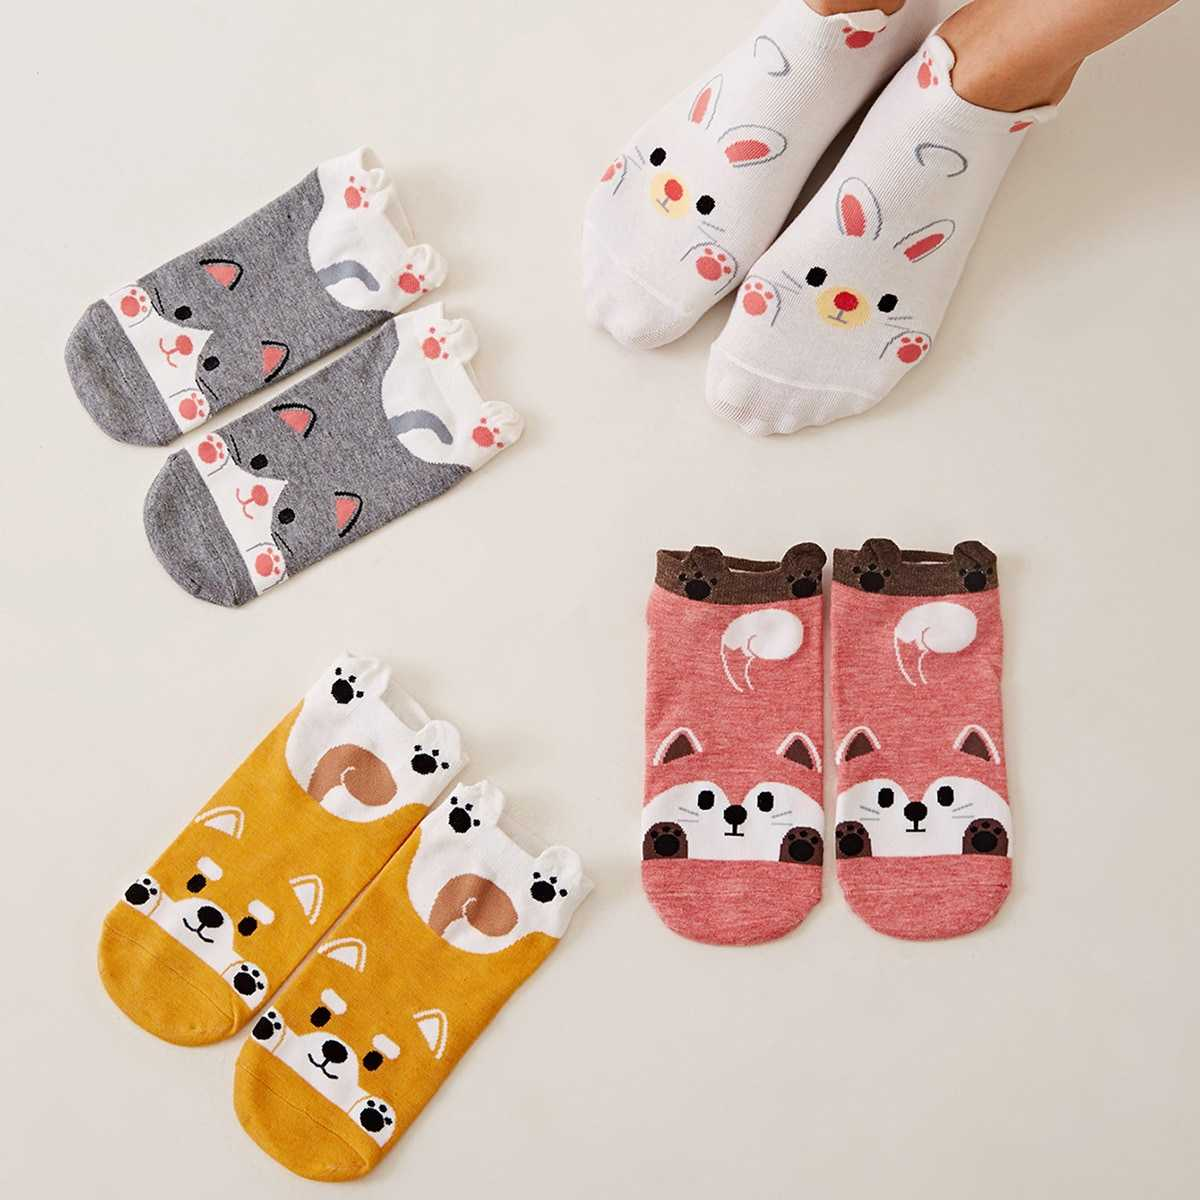 Cartoon Pattern Ankle Socks 4pairs in Multicolor by ROMWE on GOOFASH